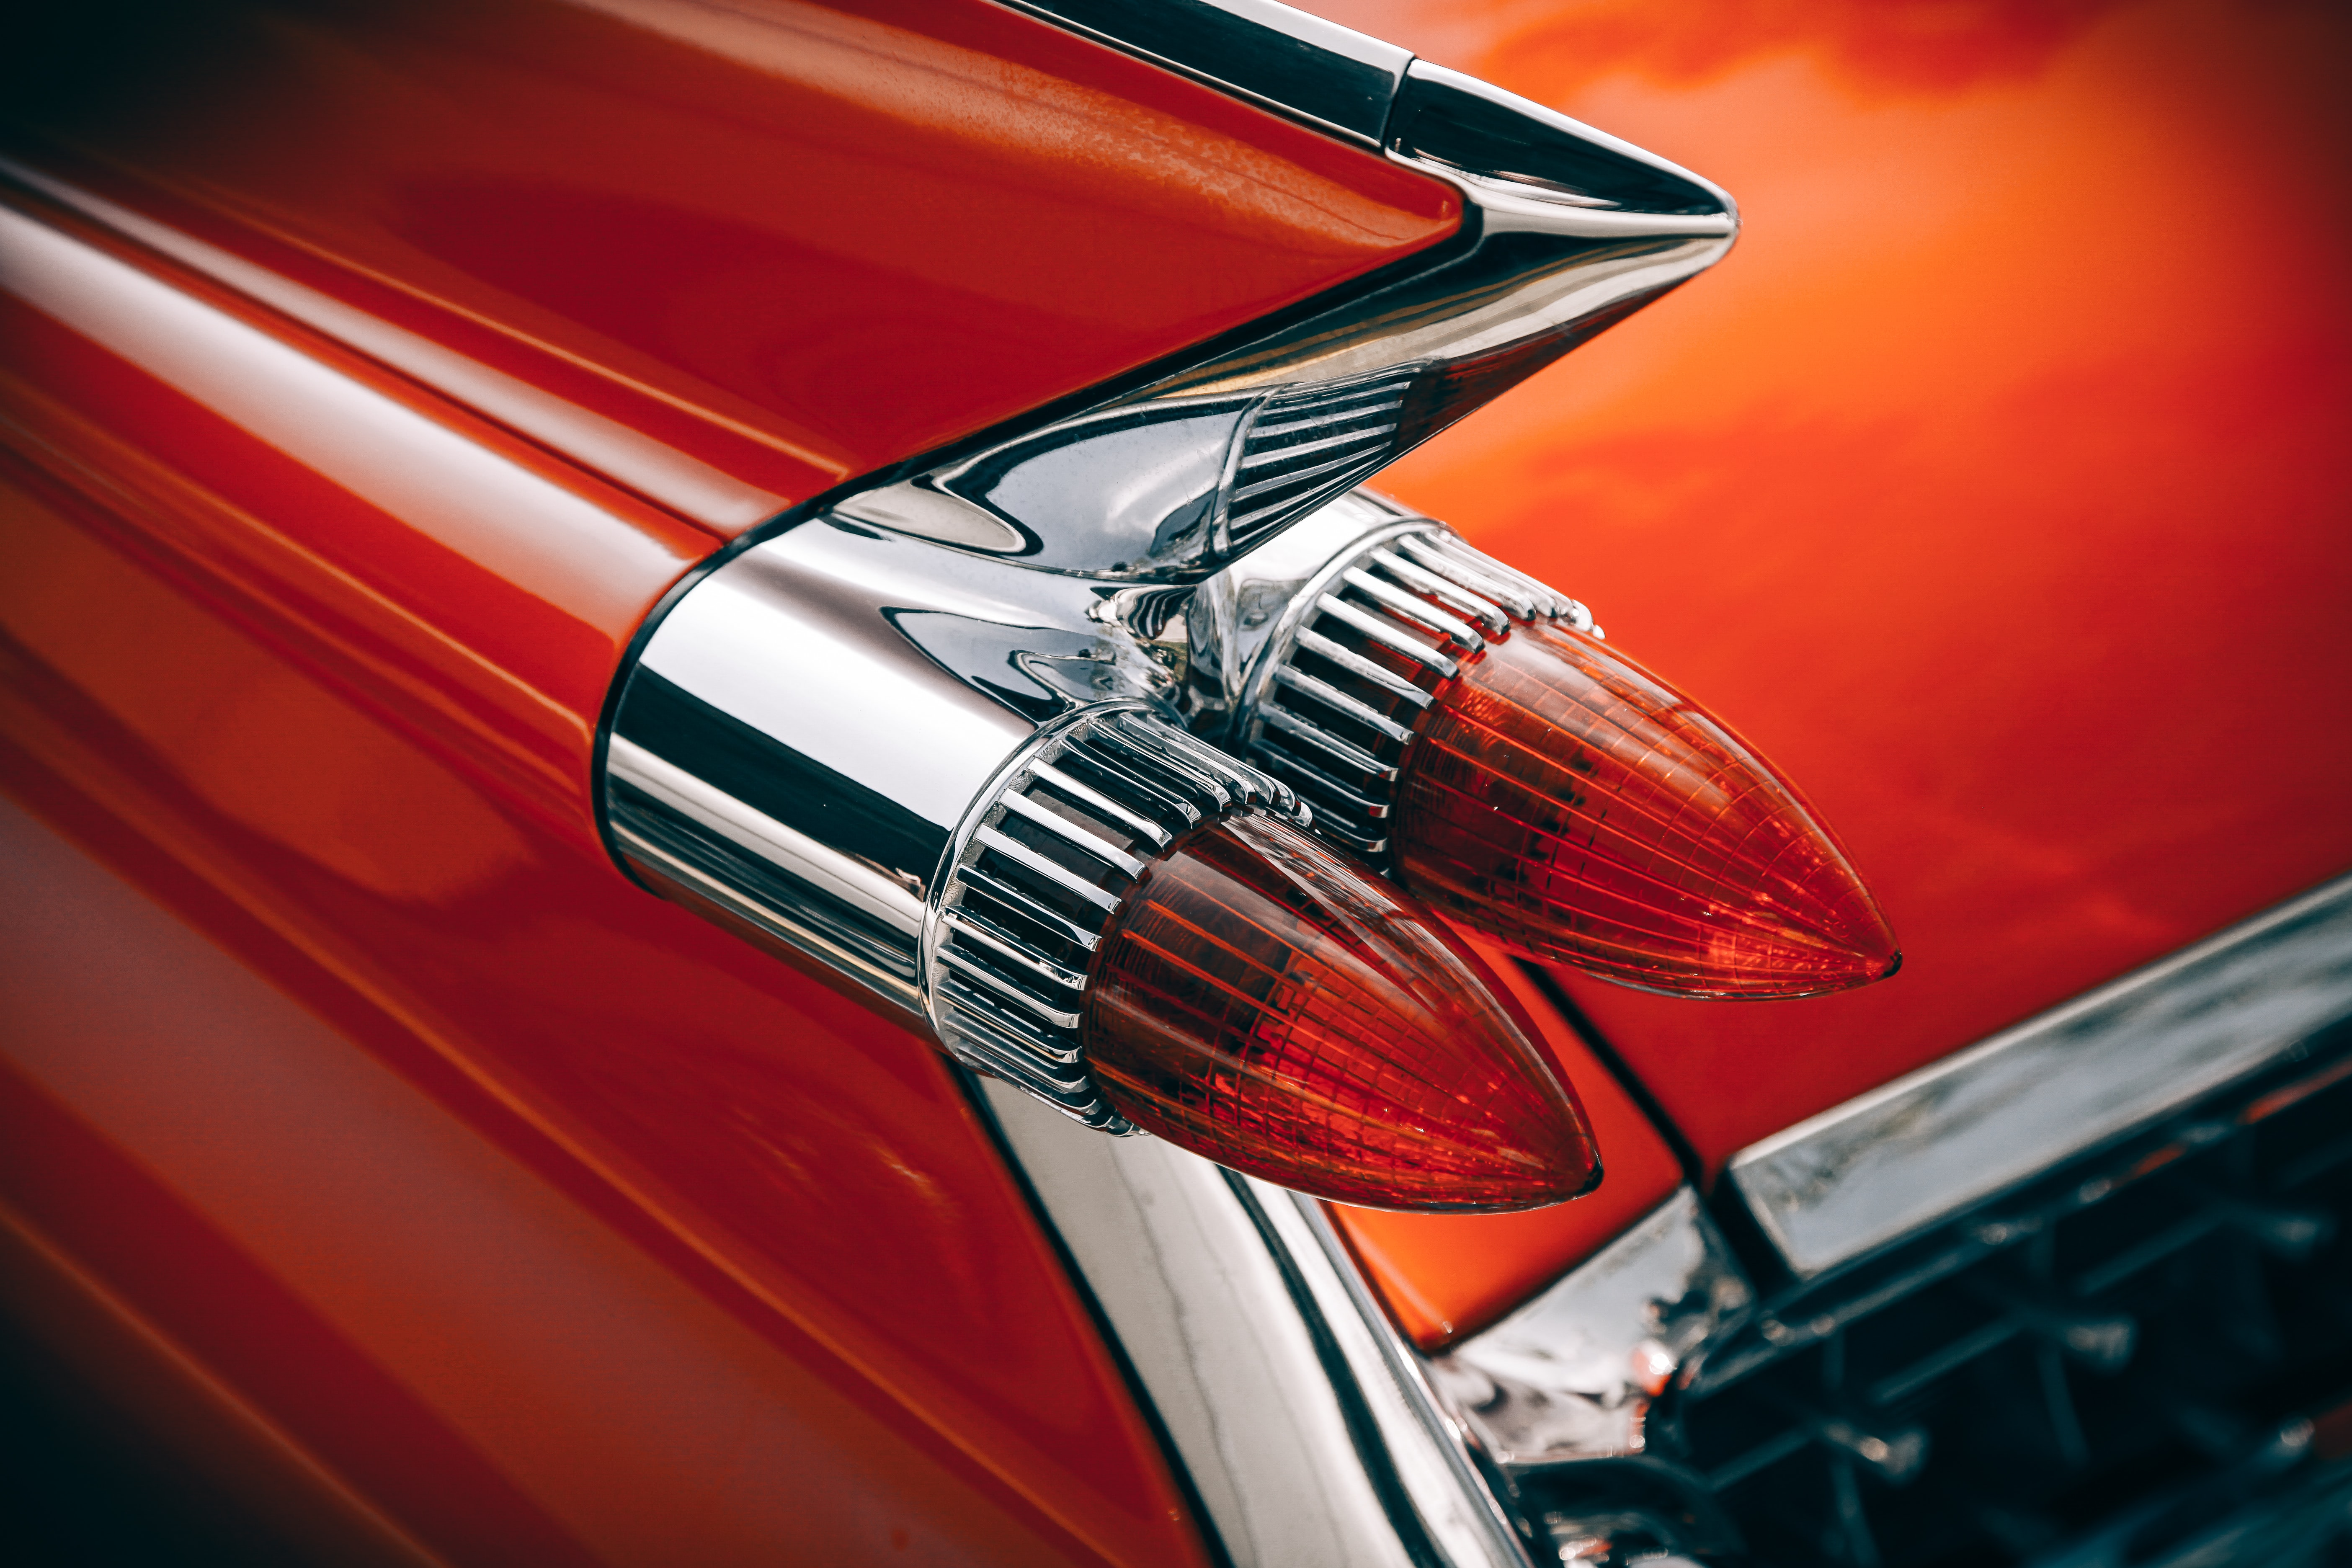 Macro shot of a red vintage car's tail light.